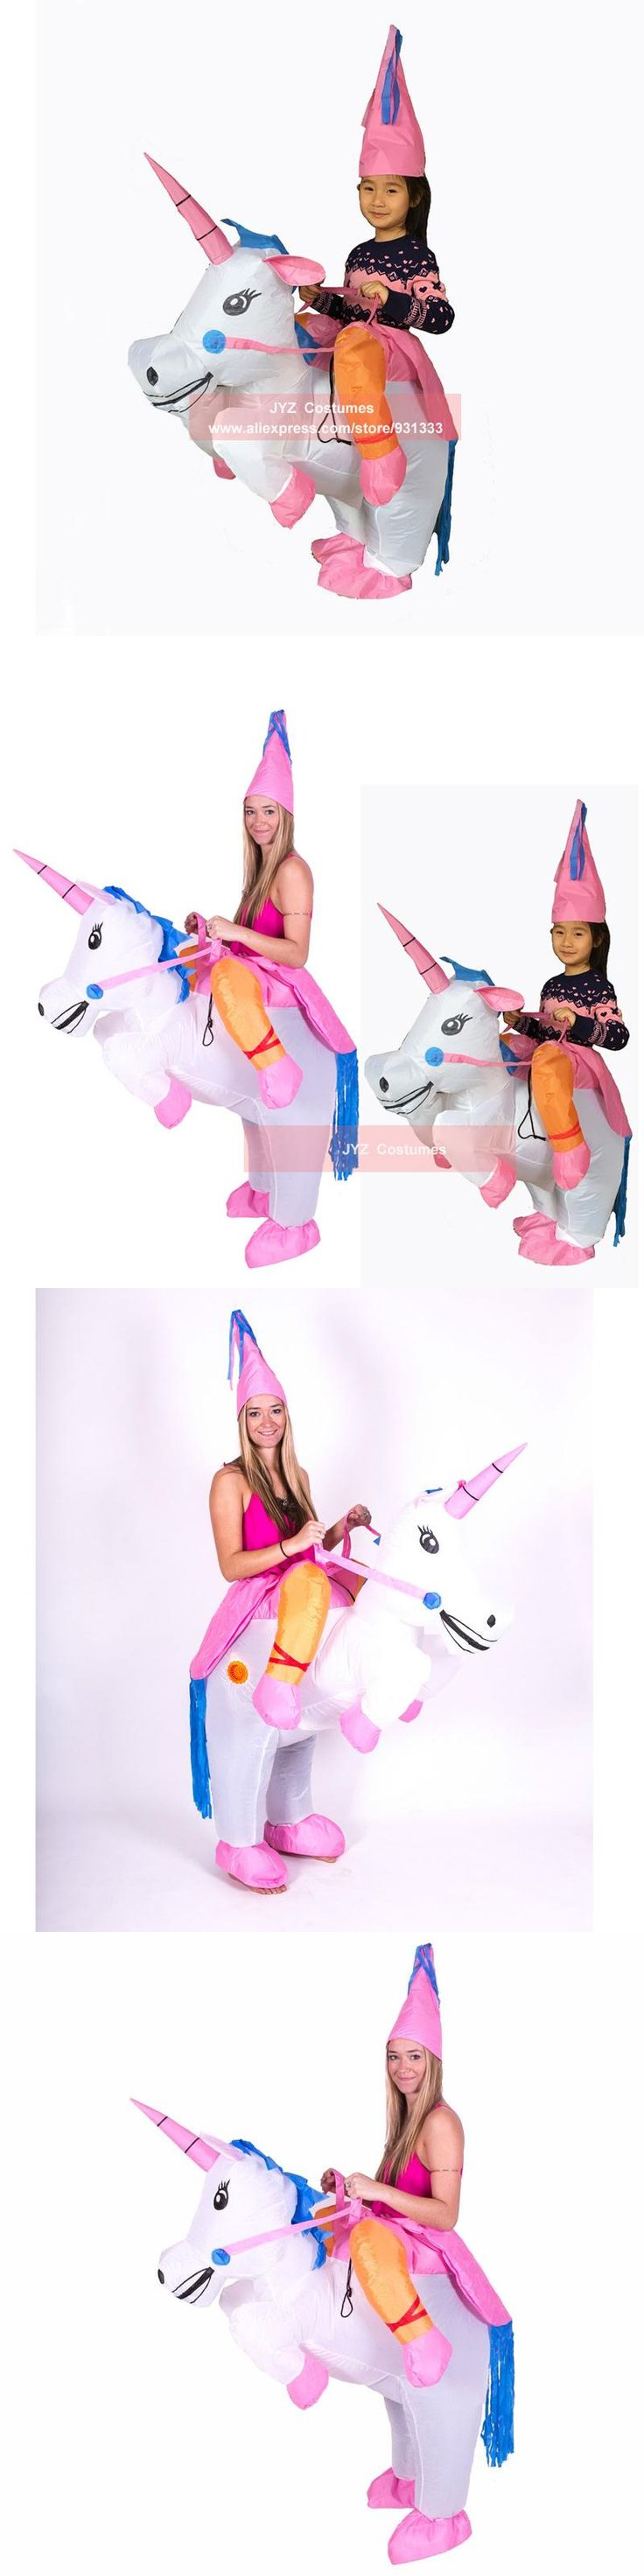 Inflatable Unicorn Fancy Dress Kids Adult Horse Riding Costumes for Halloween Carnival Dance Party Boys Girls Inflated Outfit